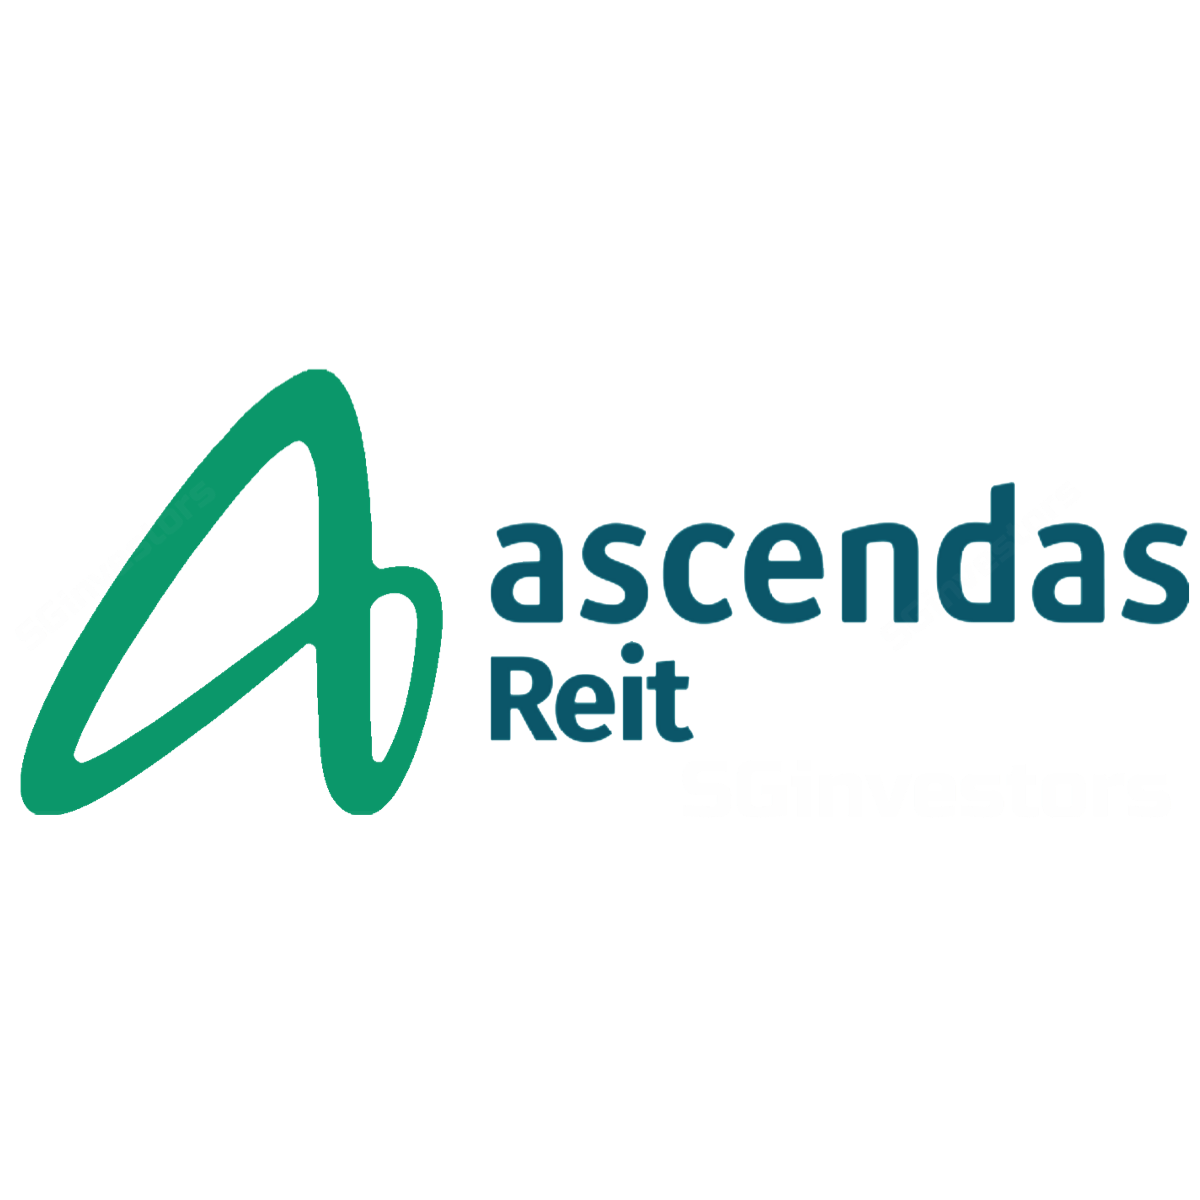 Ascendas REIT - Phillip Securities 2017-12-18: The Stable Giant